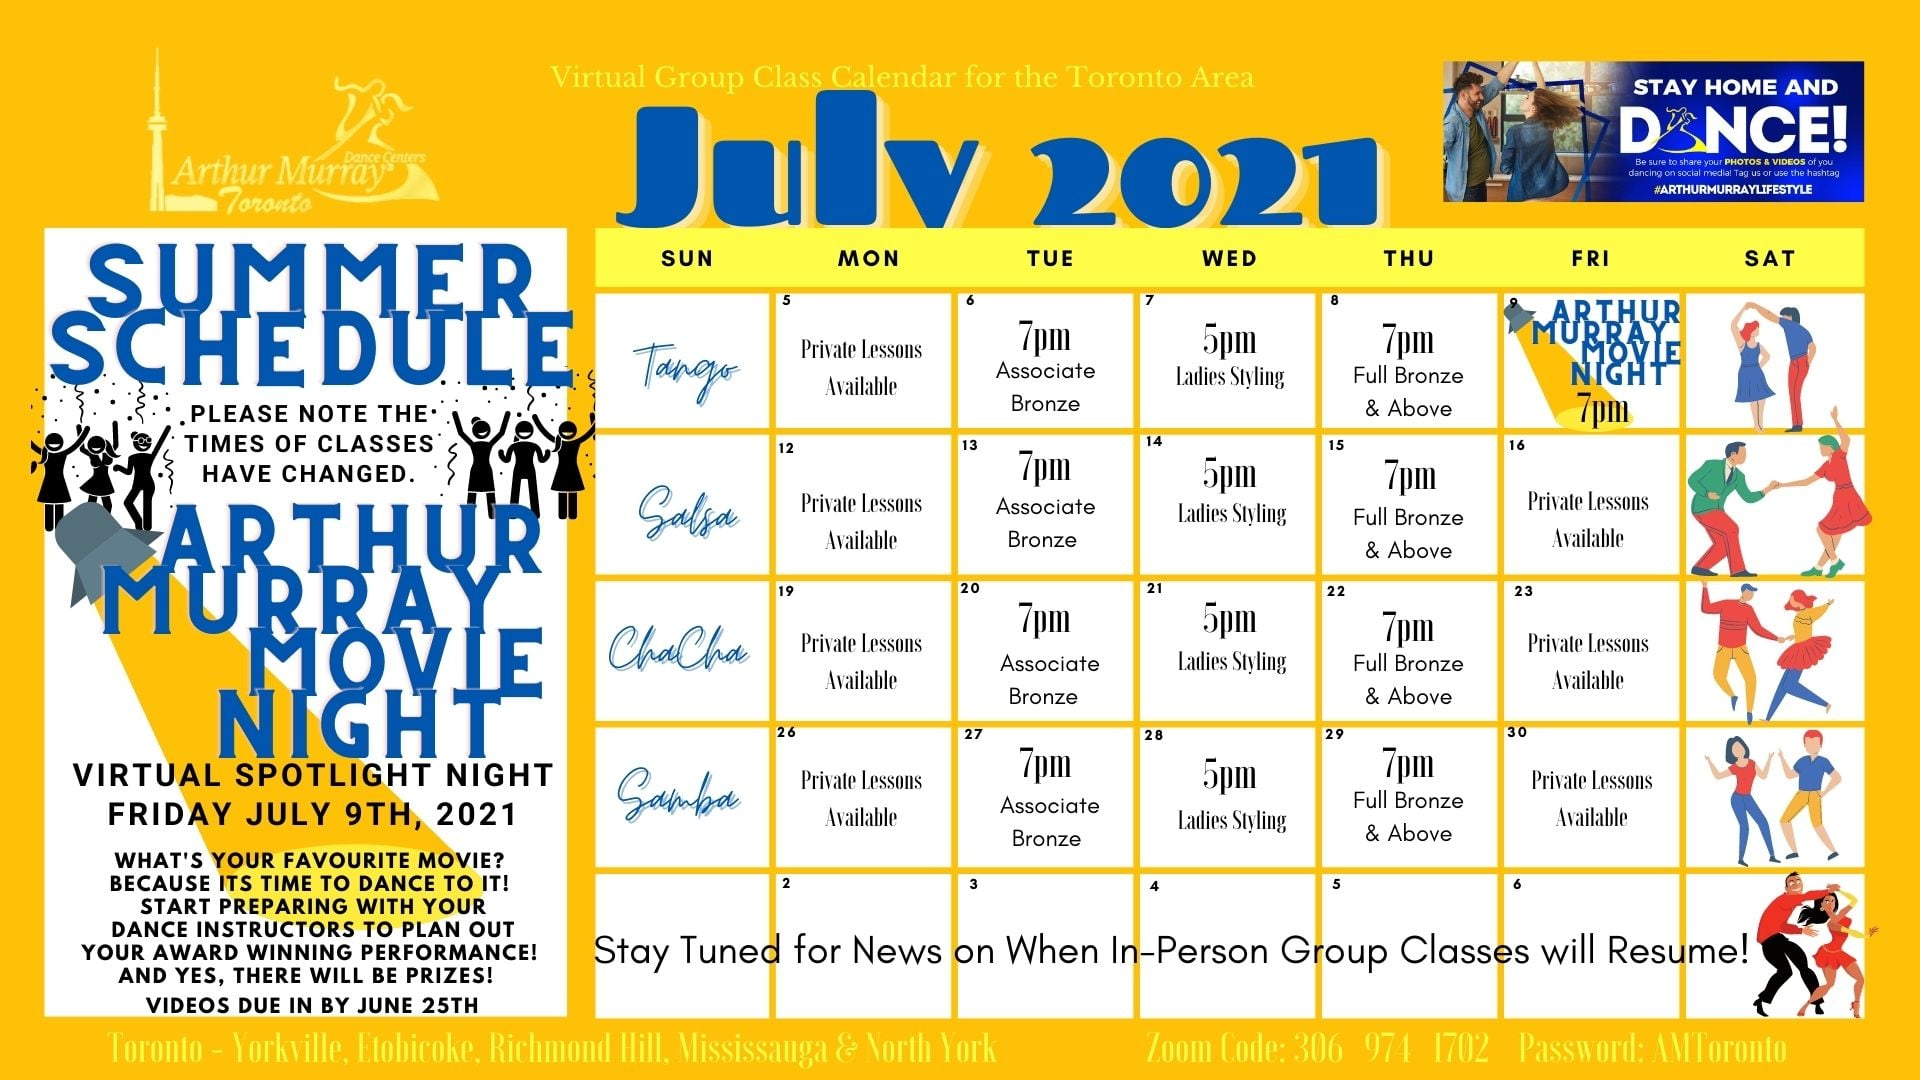 Arthur Murray Toronto - North York July 2021 Dance Class Calendar including weekly schedule including tango, samba, cha cha, salsa, private dance lessons, group dance classes, dance parties, and dance studio events in Toronto